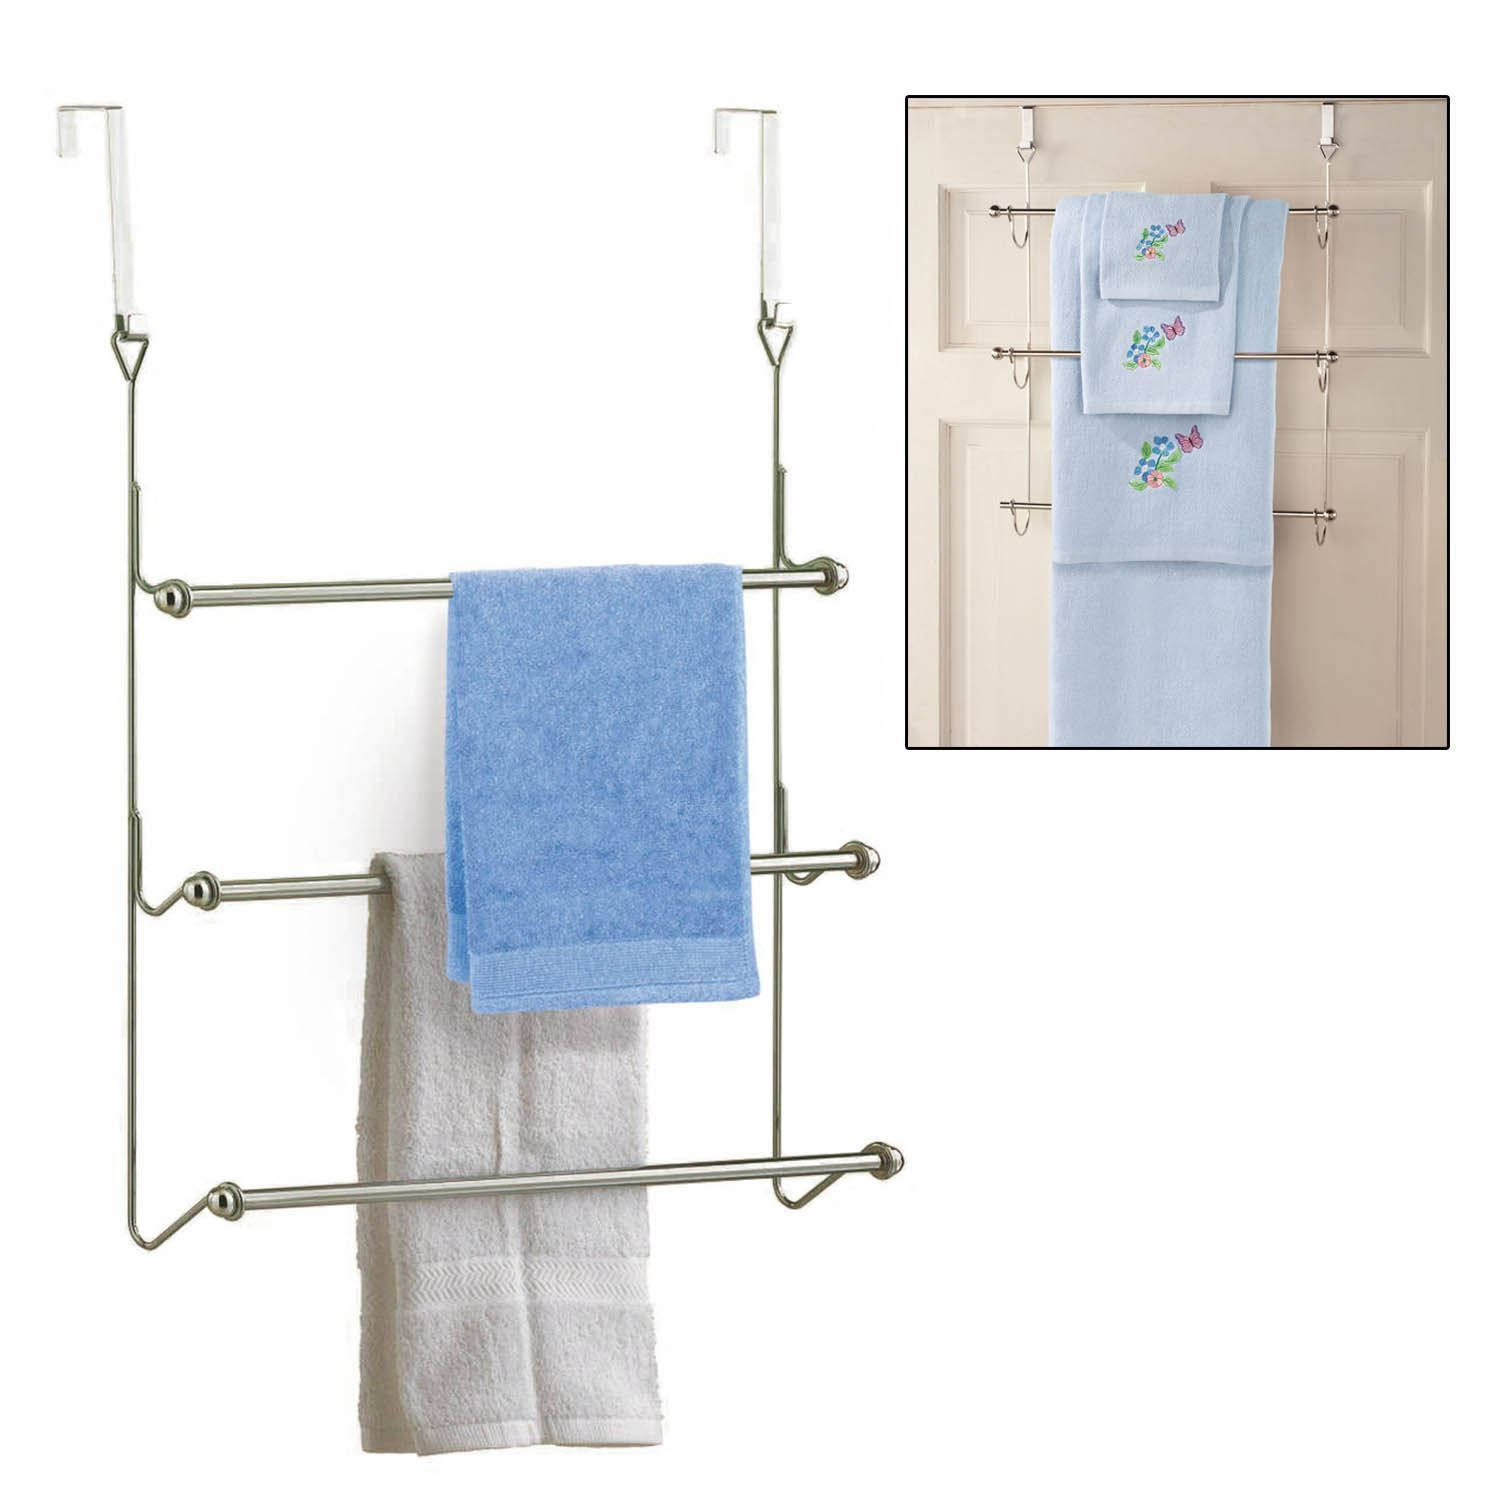 Spiegel aus hollywood-ankleidezimmer latest posts under bathroom towel storage  bad  pinterest  towel